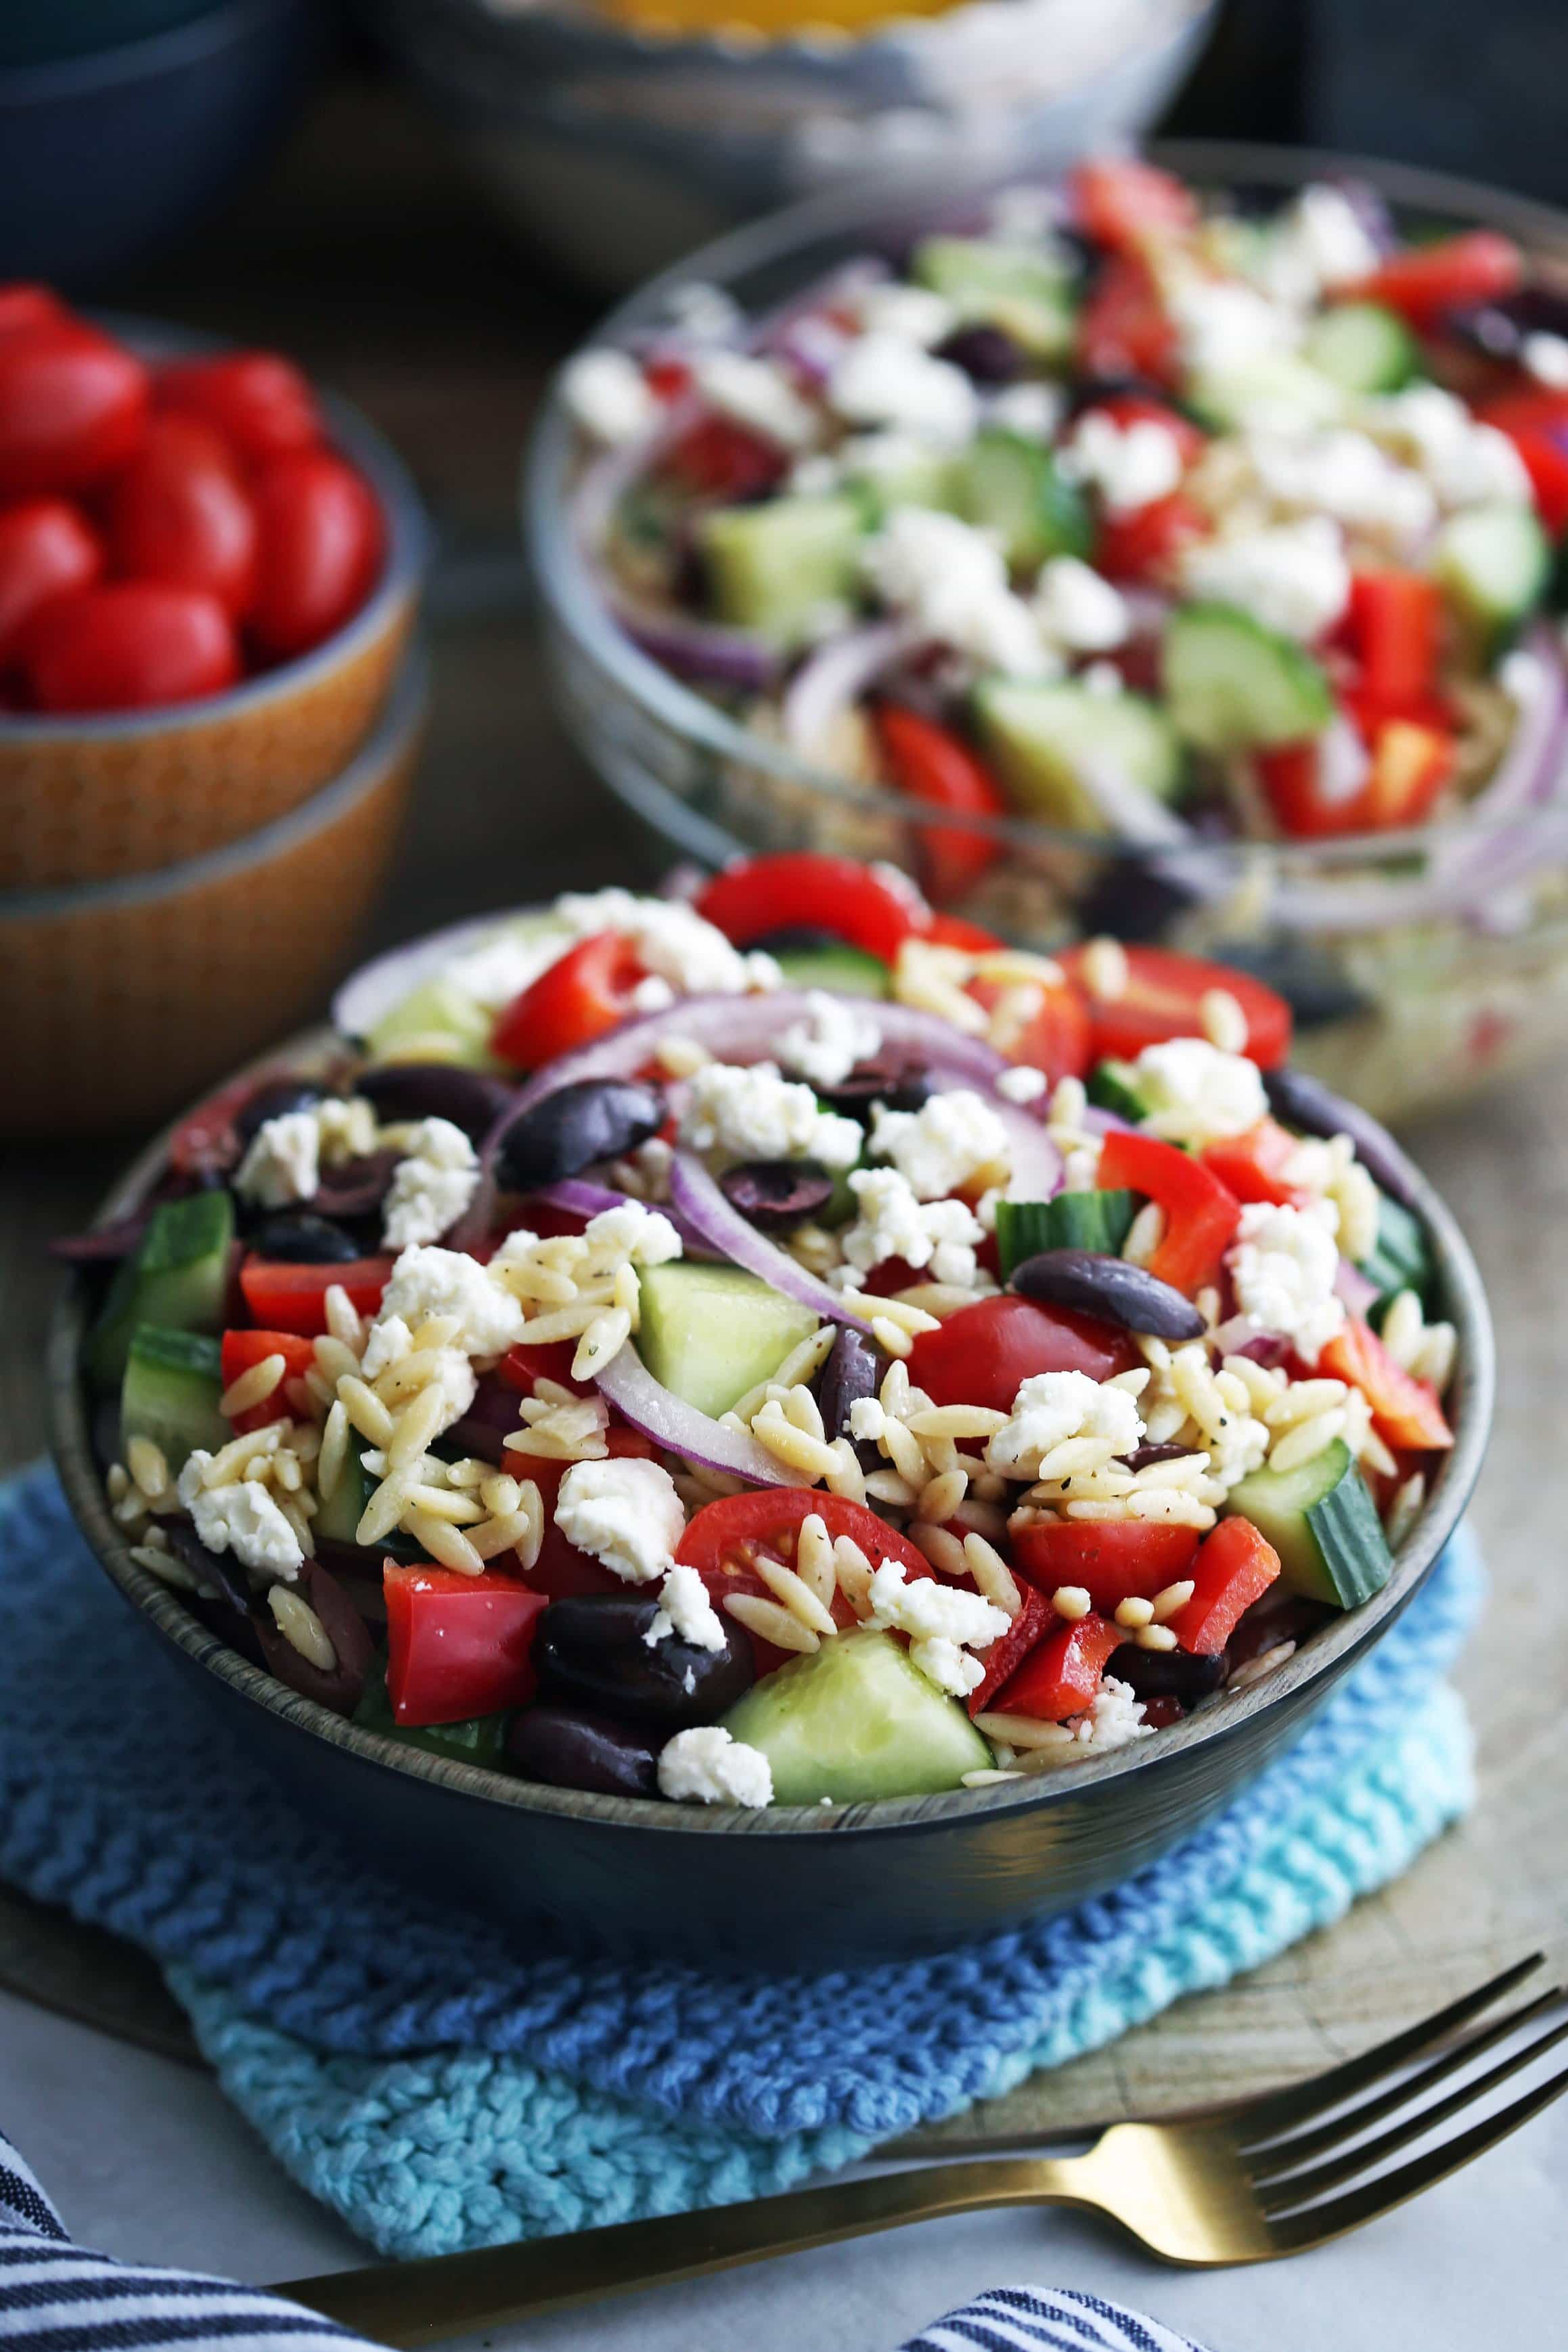 Greek orzo salad with crumbled feta, Kalamata olives, and raw vegetables in a dark brown bowl and a large glass bowl.